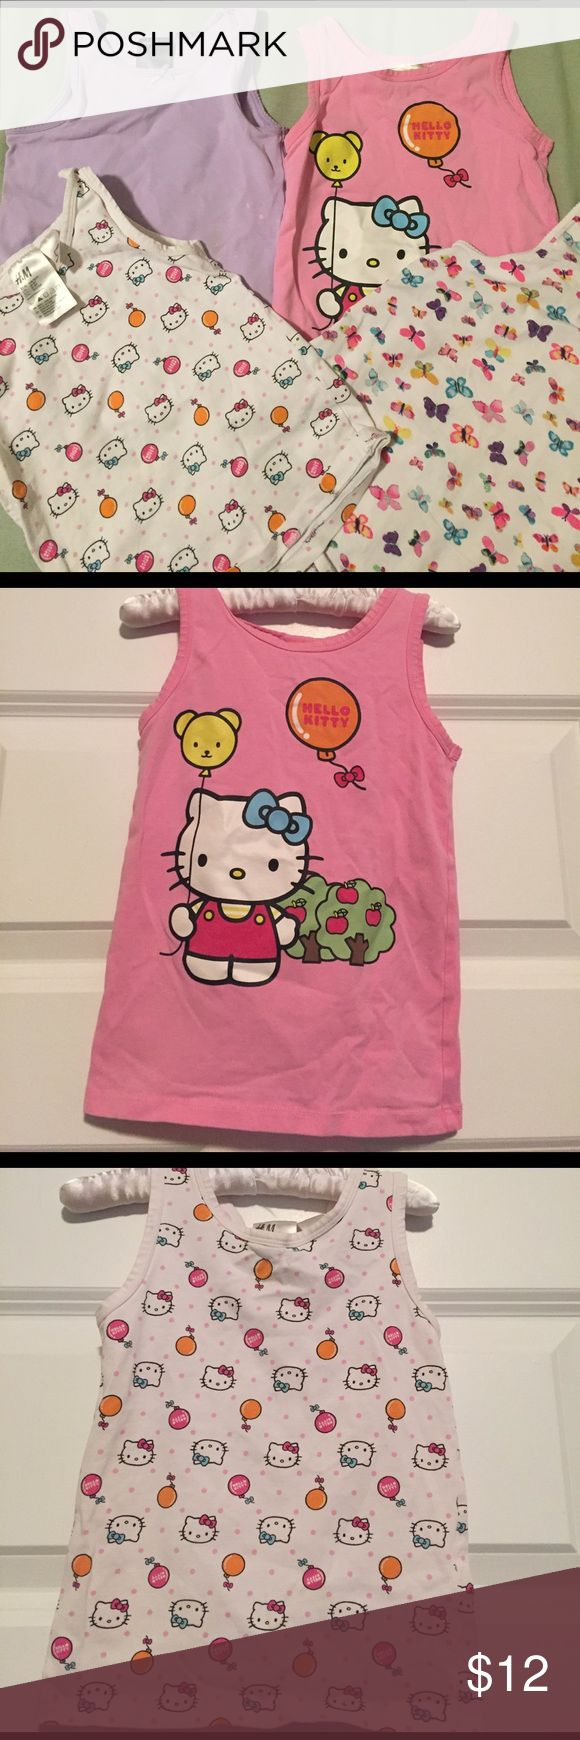 Lot of 4 H&M Sleeveless Tees/Undershirts Lot of 4 H&M Sleeveless tees / undershirts. 2 are Hello Kitty, 1 with butterflies, 1 lavender. Shows wash wear and lavender has bleach stains as shown in photo. Stretchy cotton/elastane. Name in sharpie on tag or back trim. H&M Shirts & Tops Tank Tops